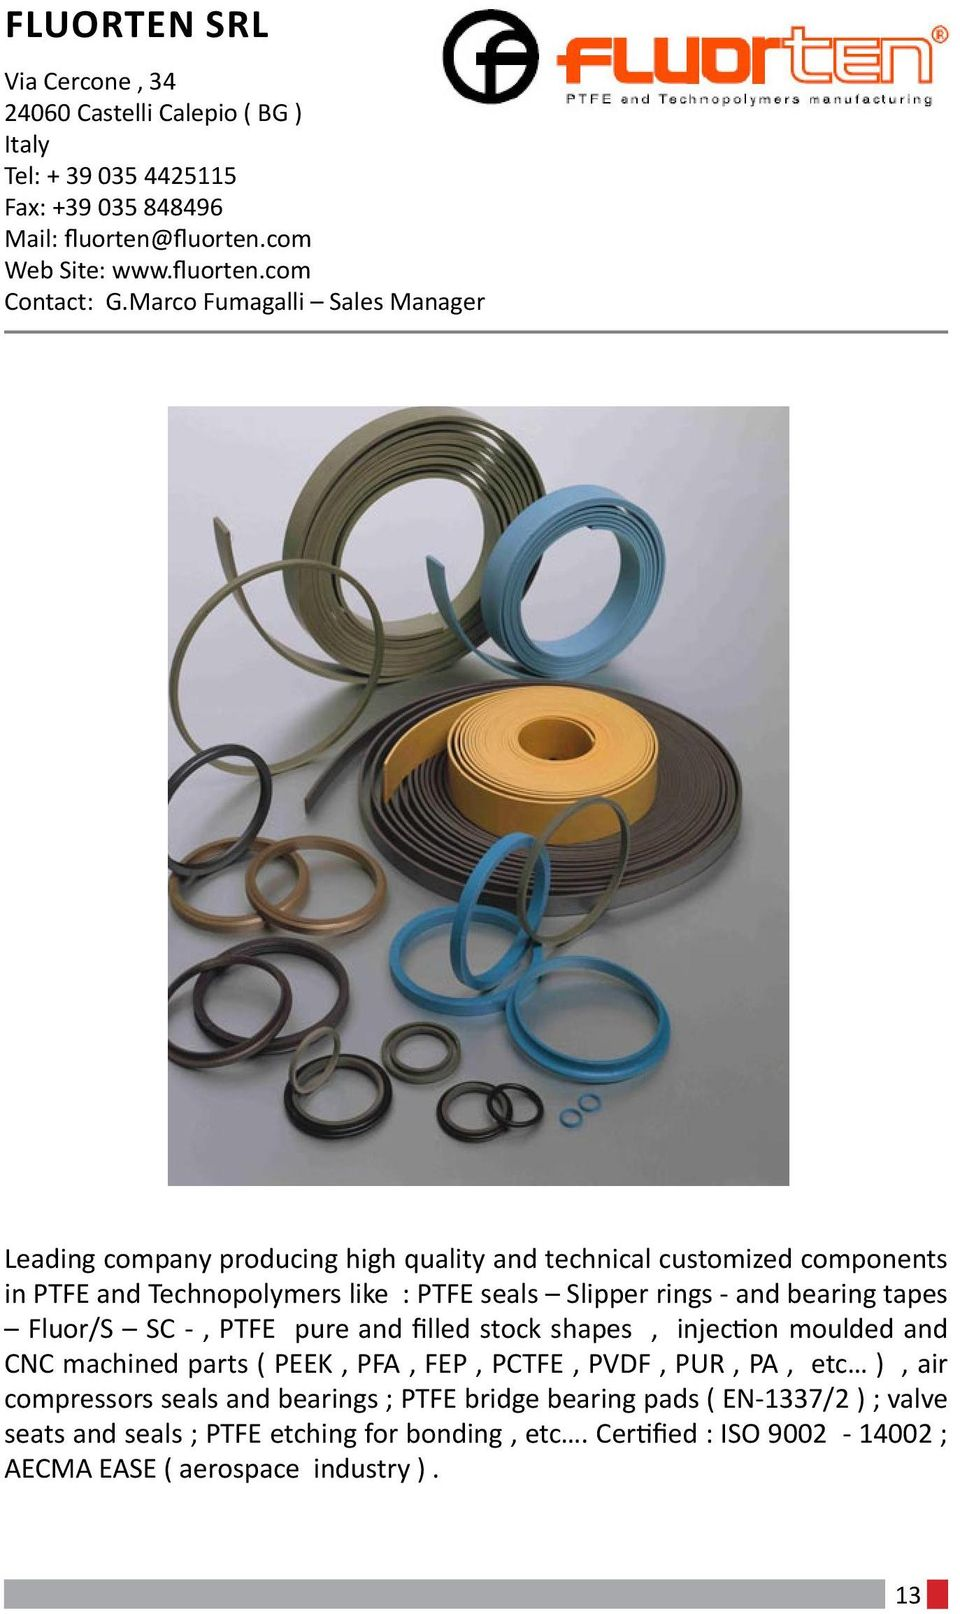 bearing tapes Fluor/S SC -, PTFE pure and filled stock shapes, injection moulded and CNC machined parts ( PEEK, PFA, FEP, PCTFE, PVDF, PUR, PA, etc ), air compressors